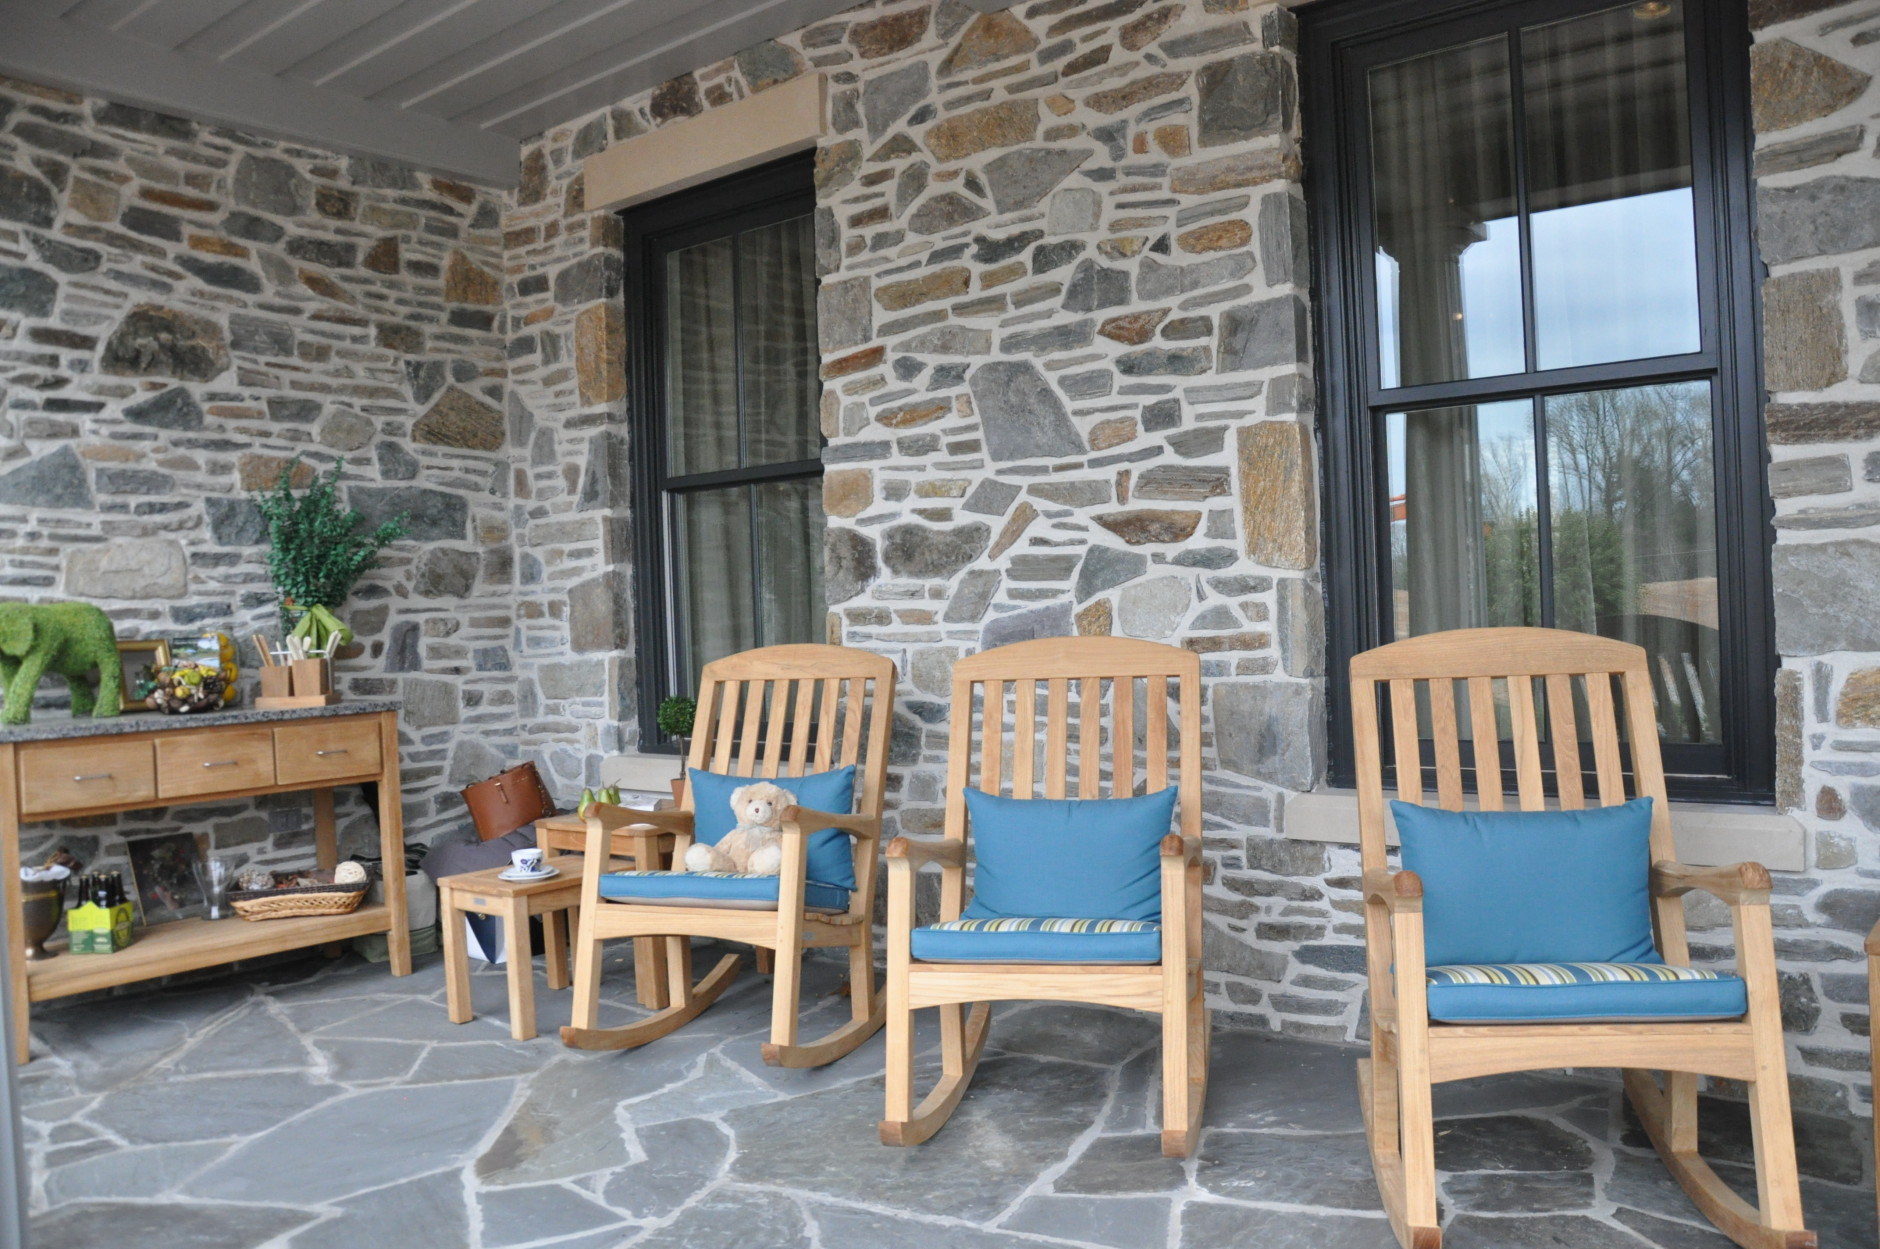 The front porch of the DC Design House was styled by Nicolette Powell and John Lemieux of Country Casual. The natural furniture against the stone facade creates an inviting welcome for visitors. (WTOP/Rachel Nania)